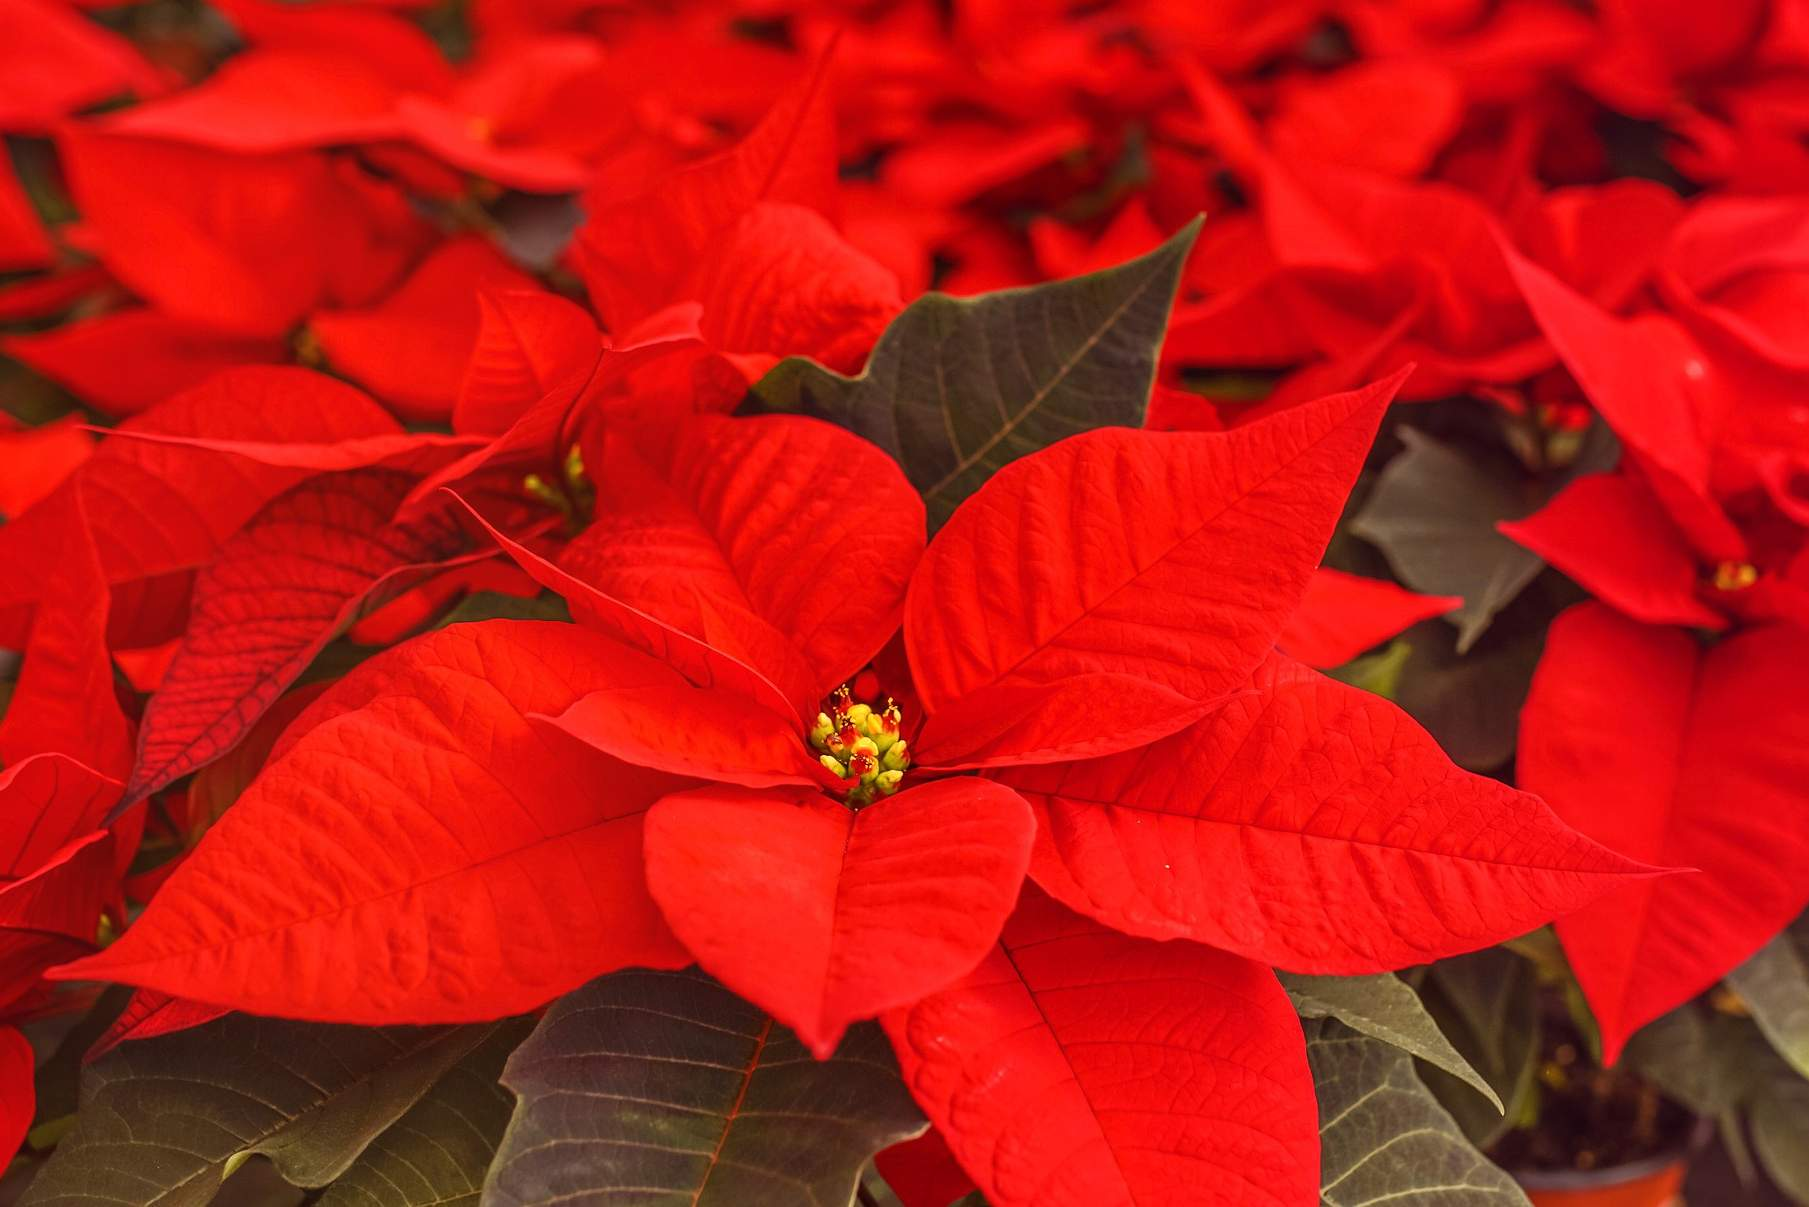 At the University of Pécs in Hungary, the effect of KE-plant on Poinsettias was investigated in comparison to a standard fertilizer